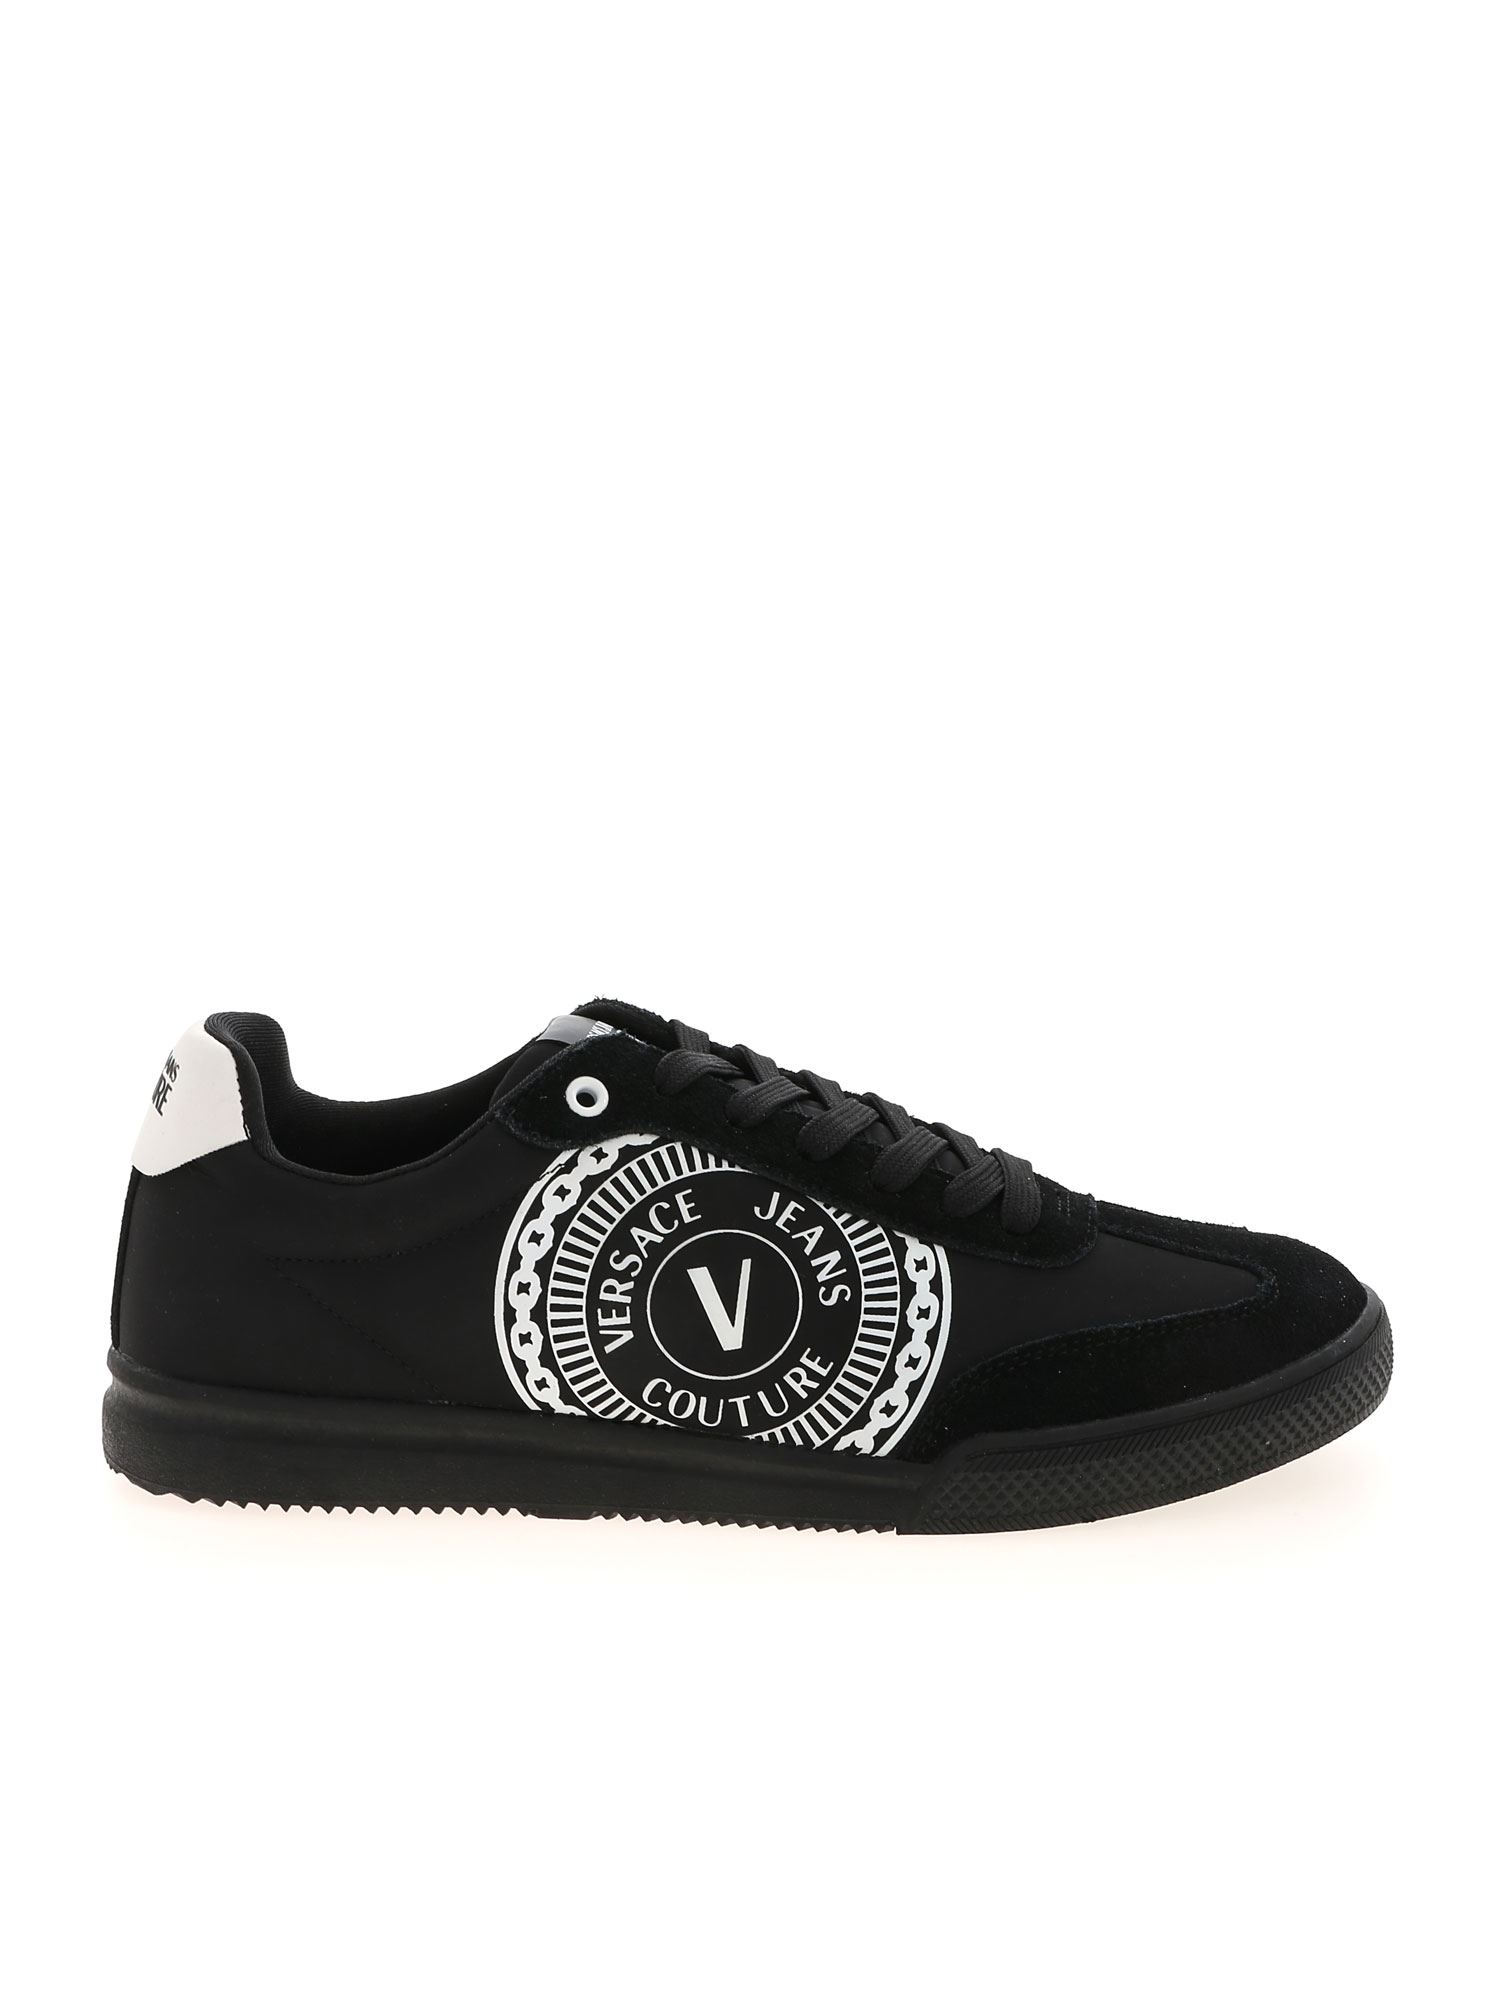 Versace Jeans Couture V-EMPLEM LOGO SNEAKERS IN BLACK AND WHITE